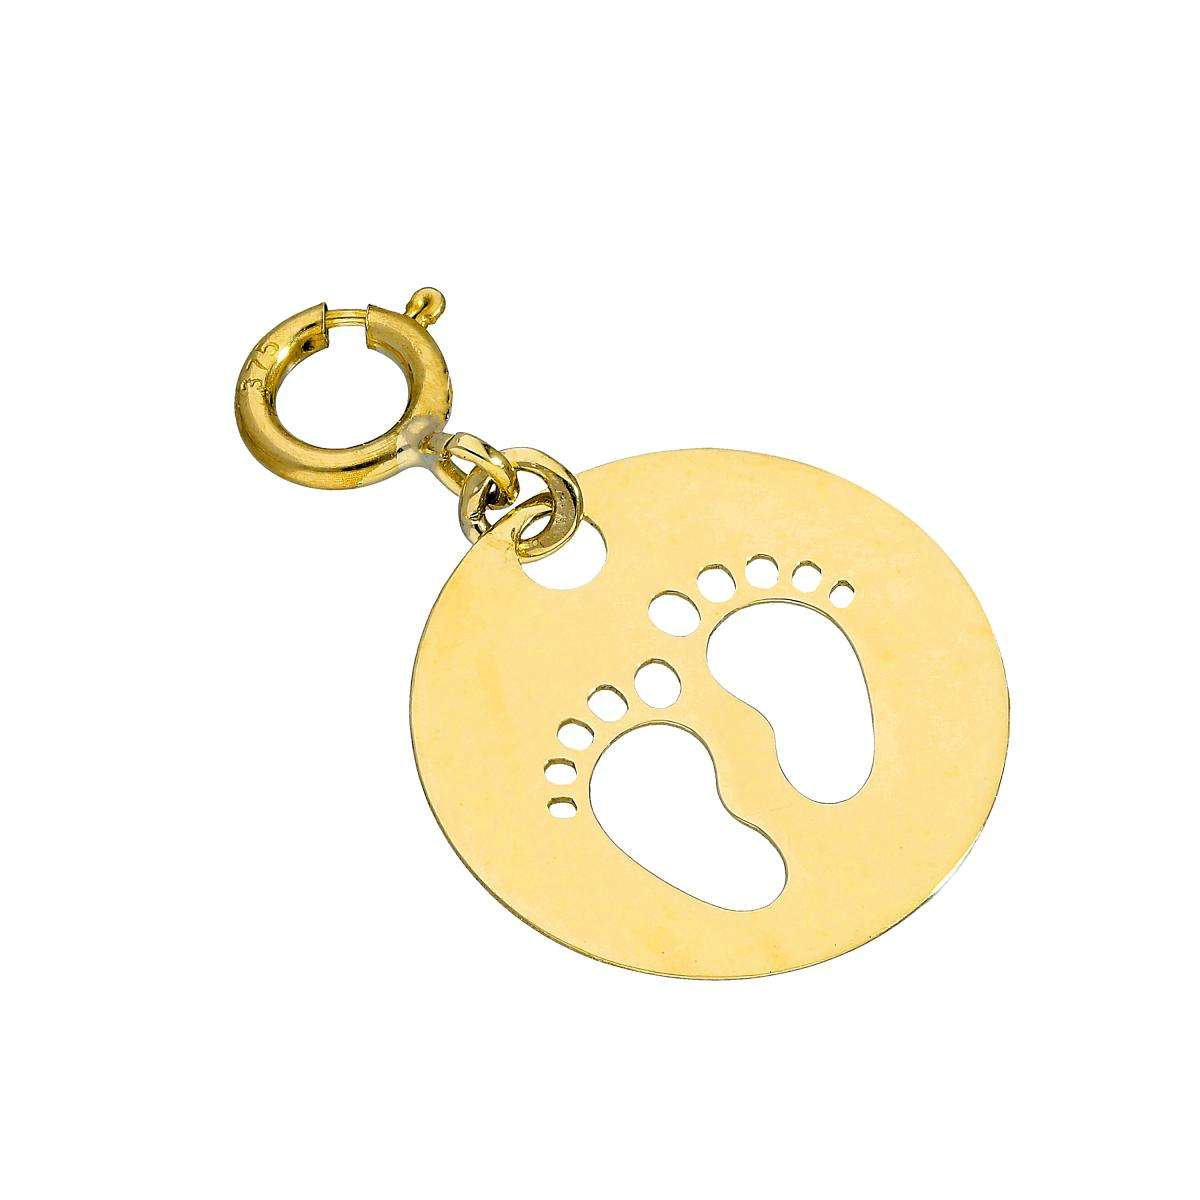 Alterative image for 9ct Gold Circle w Cut Out Footprints Clip On Charm